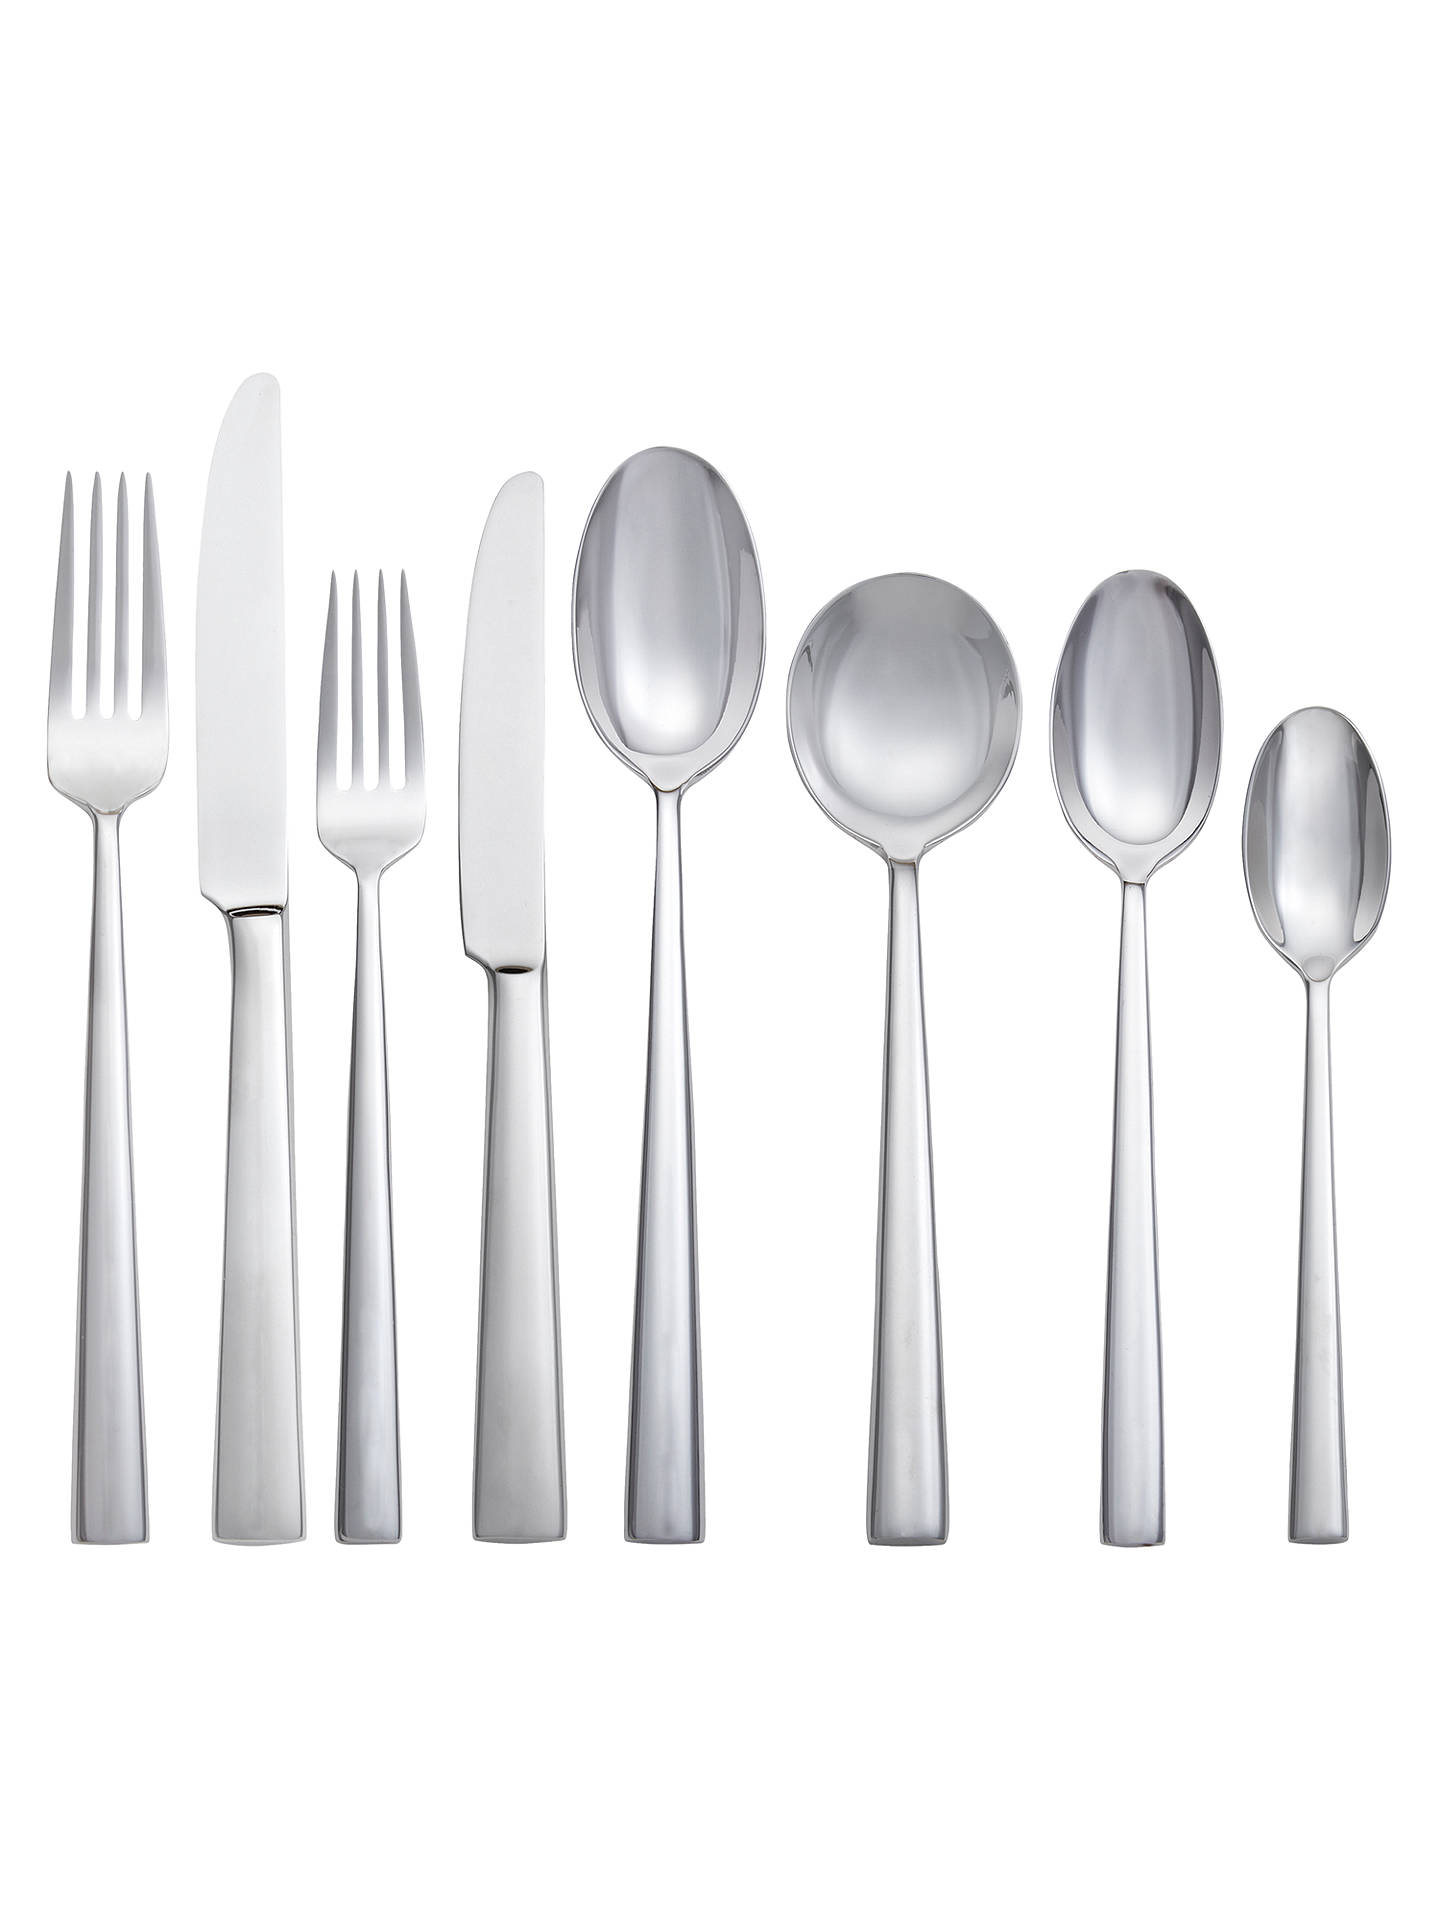 Buy John Lewis & Partners Ellipse Dessert Spoon Online at johnlewis.com